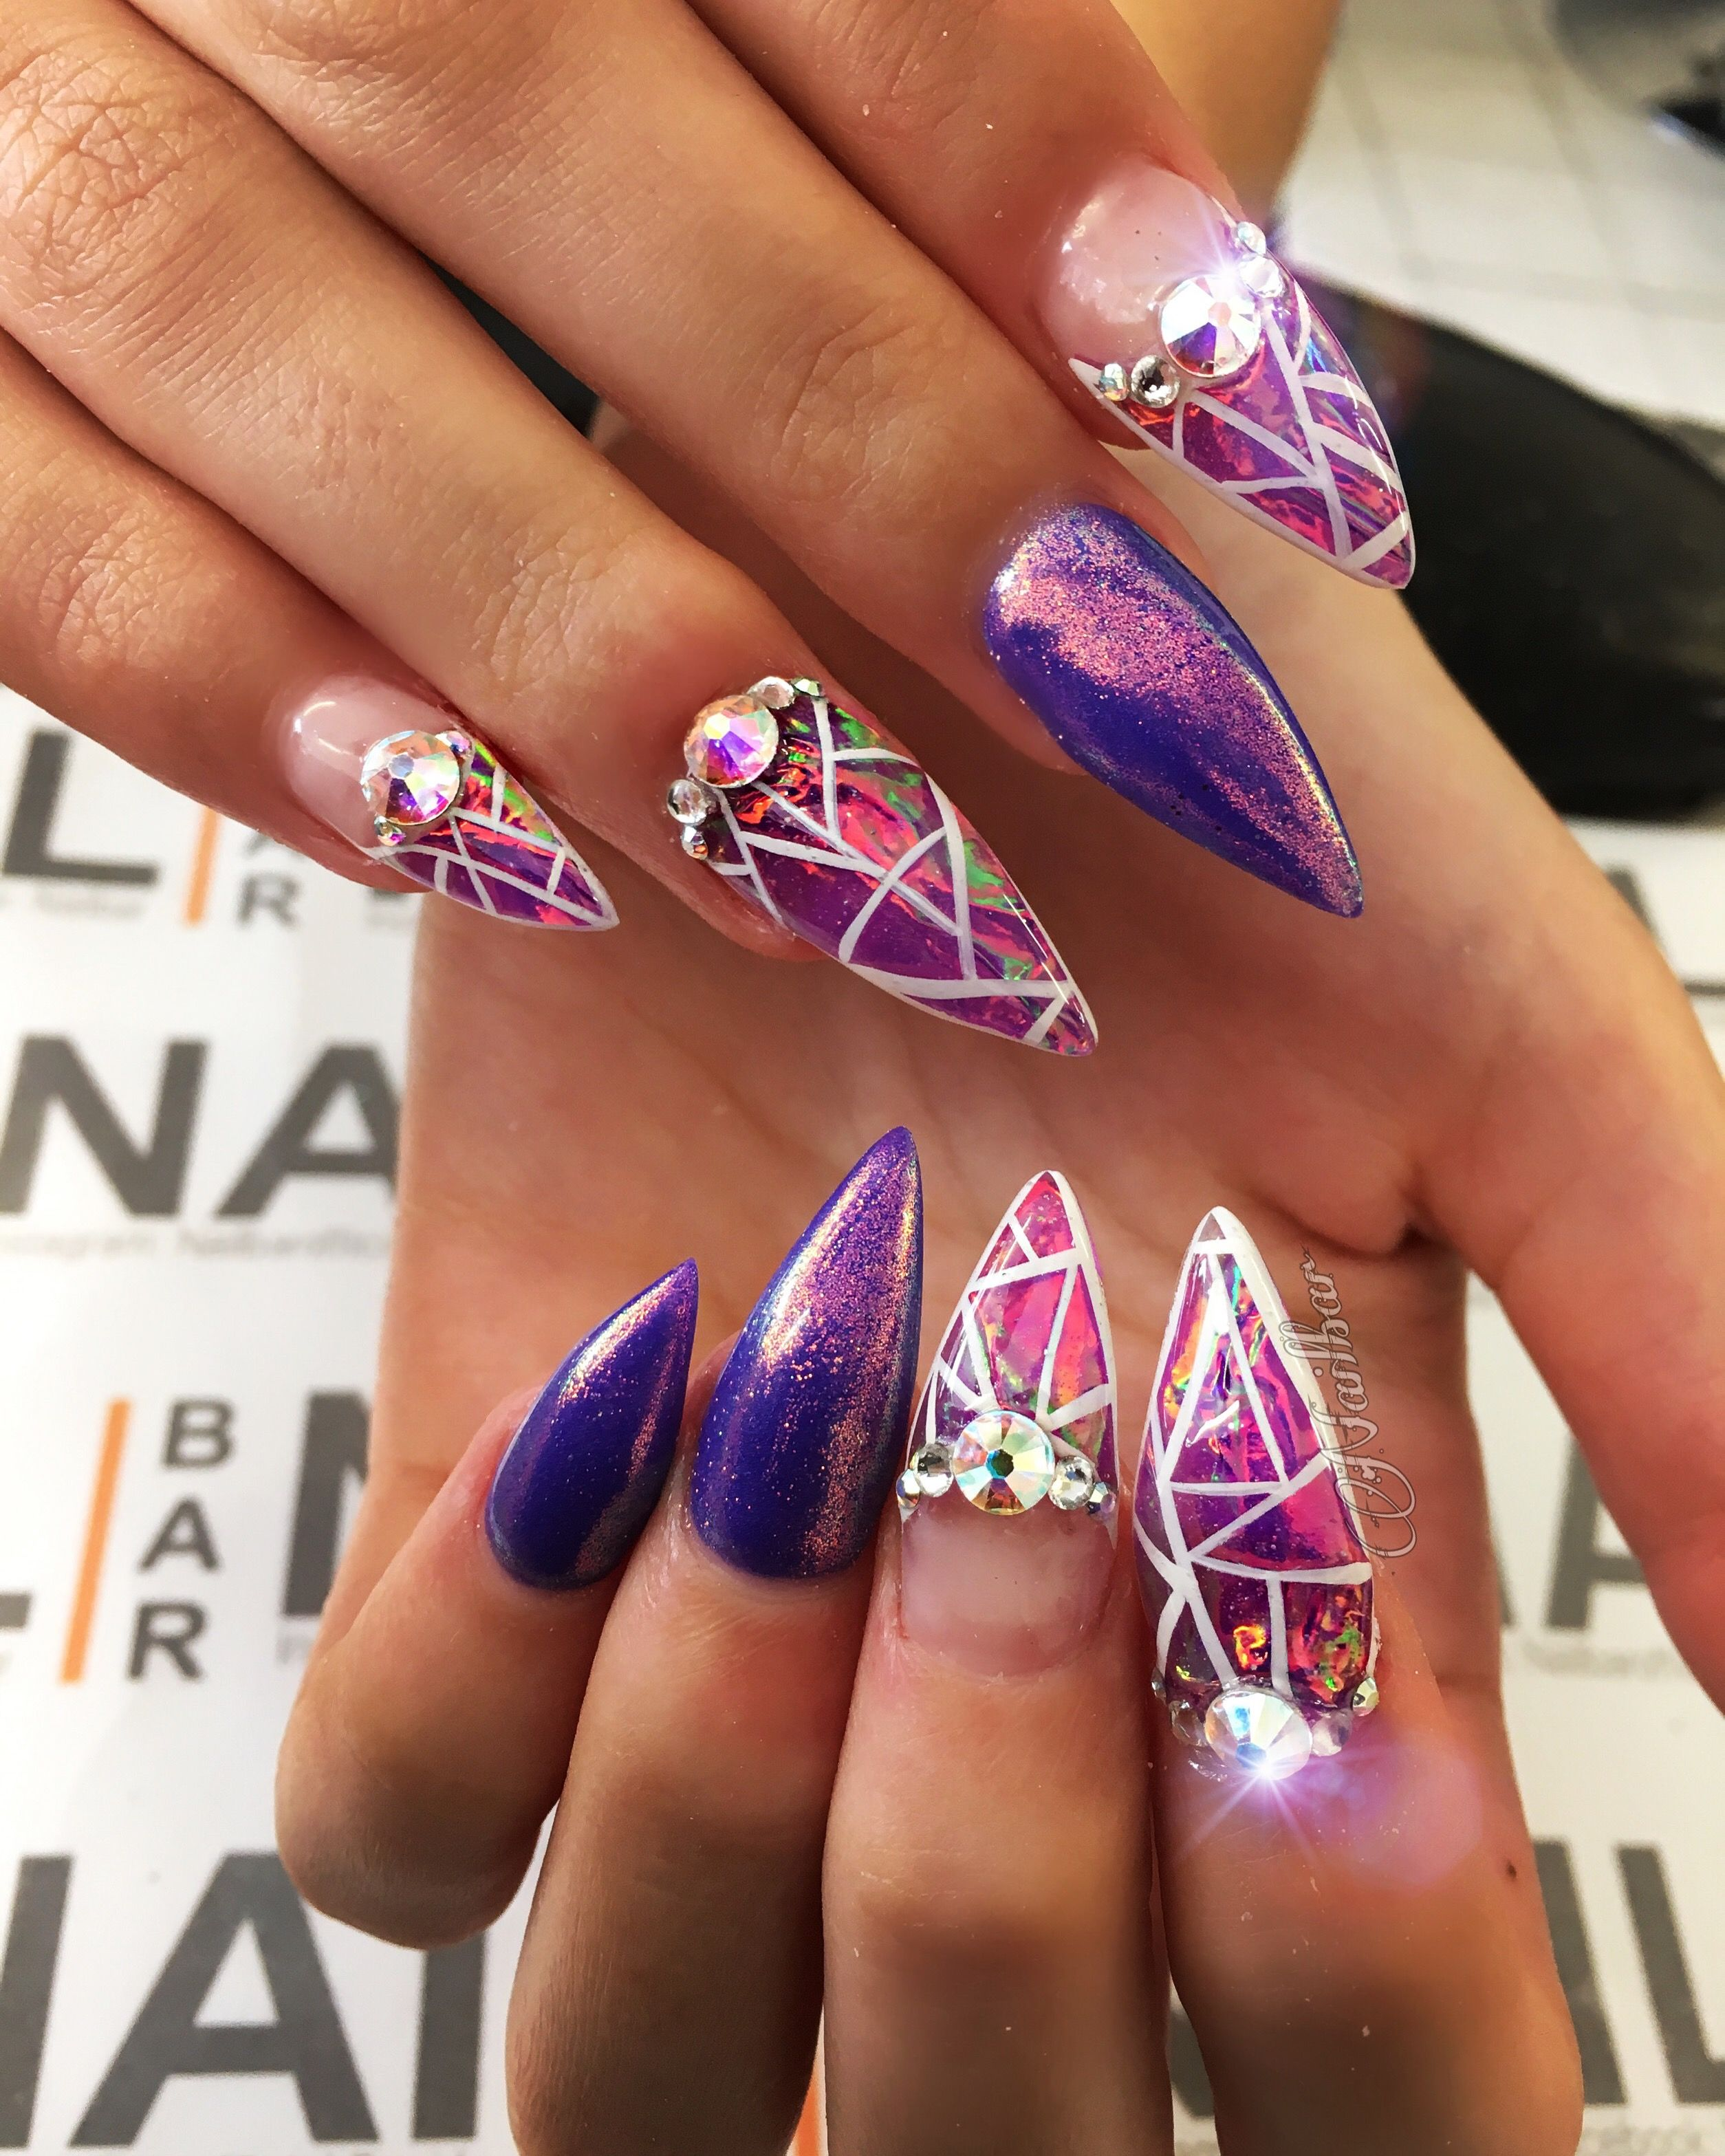 Pin by Shahidah Phillips on nail designs | Pinterest | Unicorn nails ...